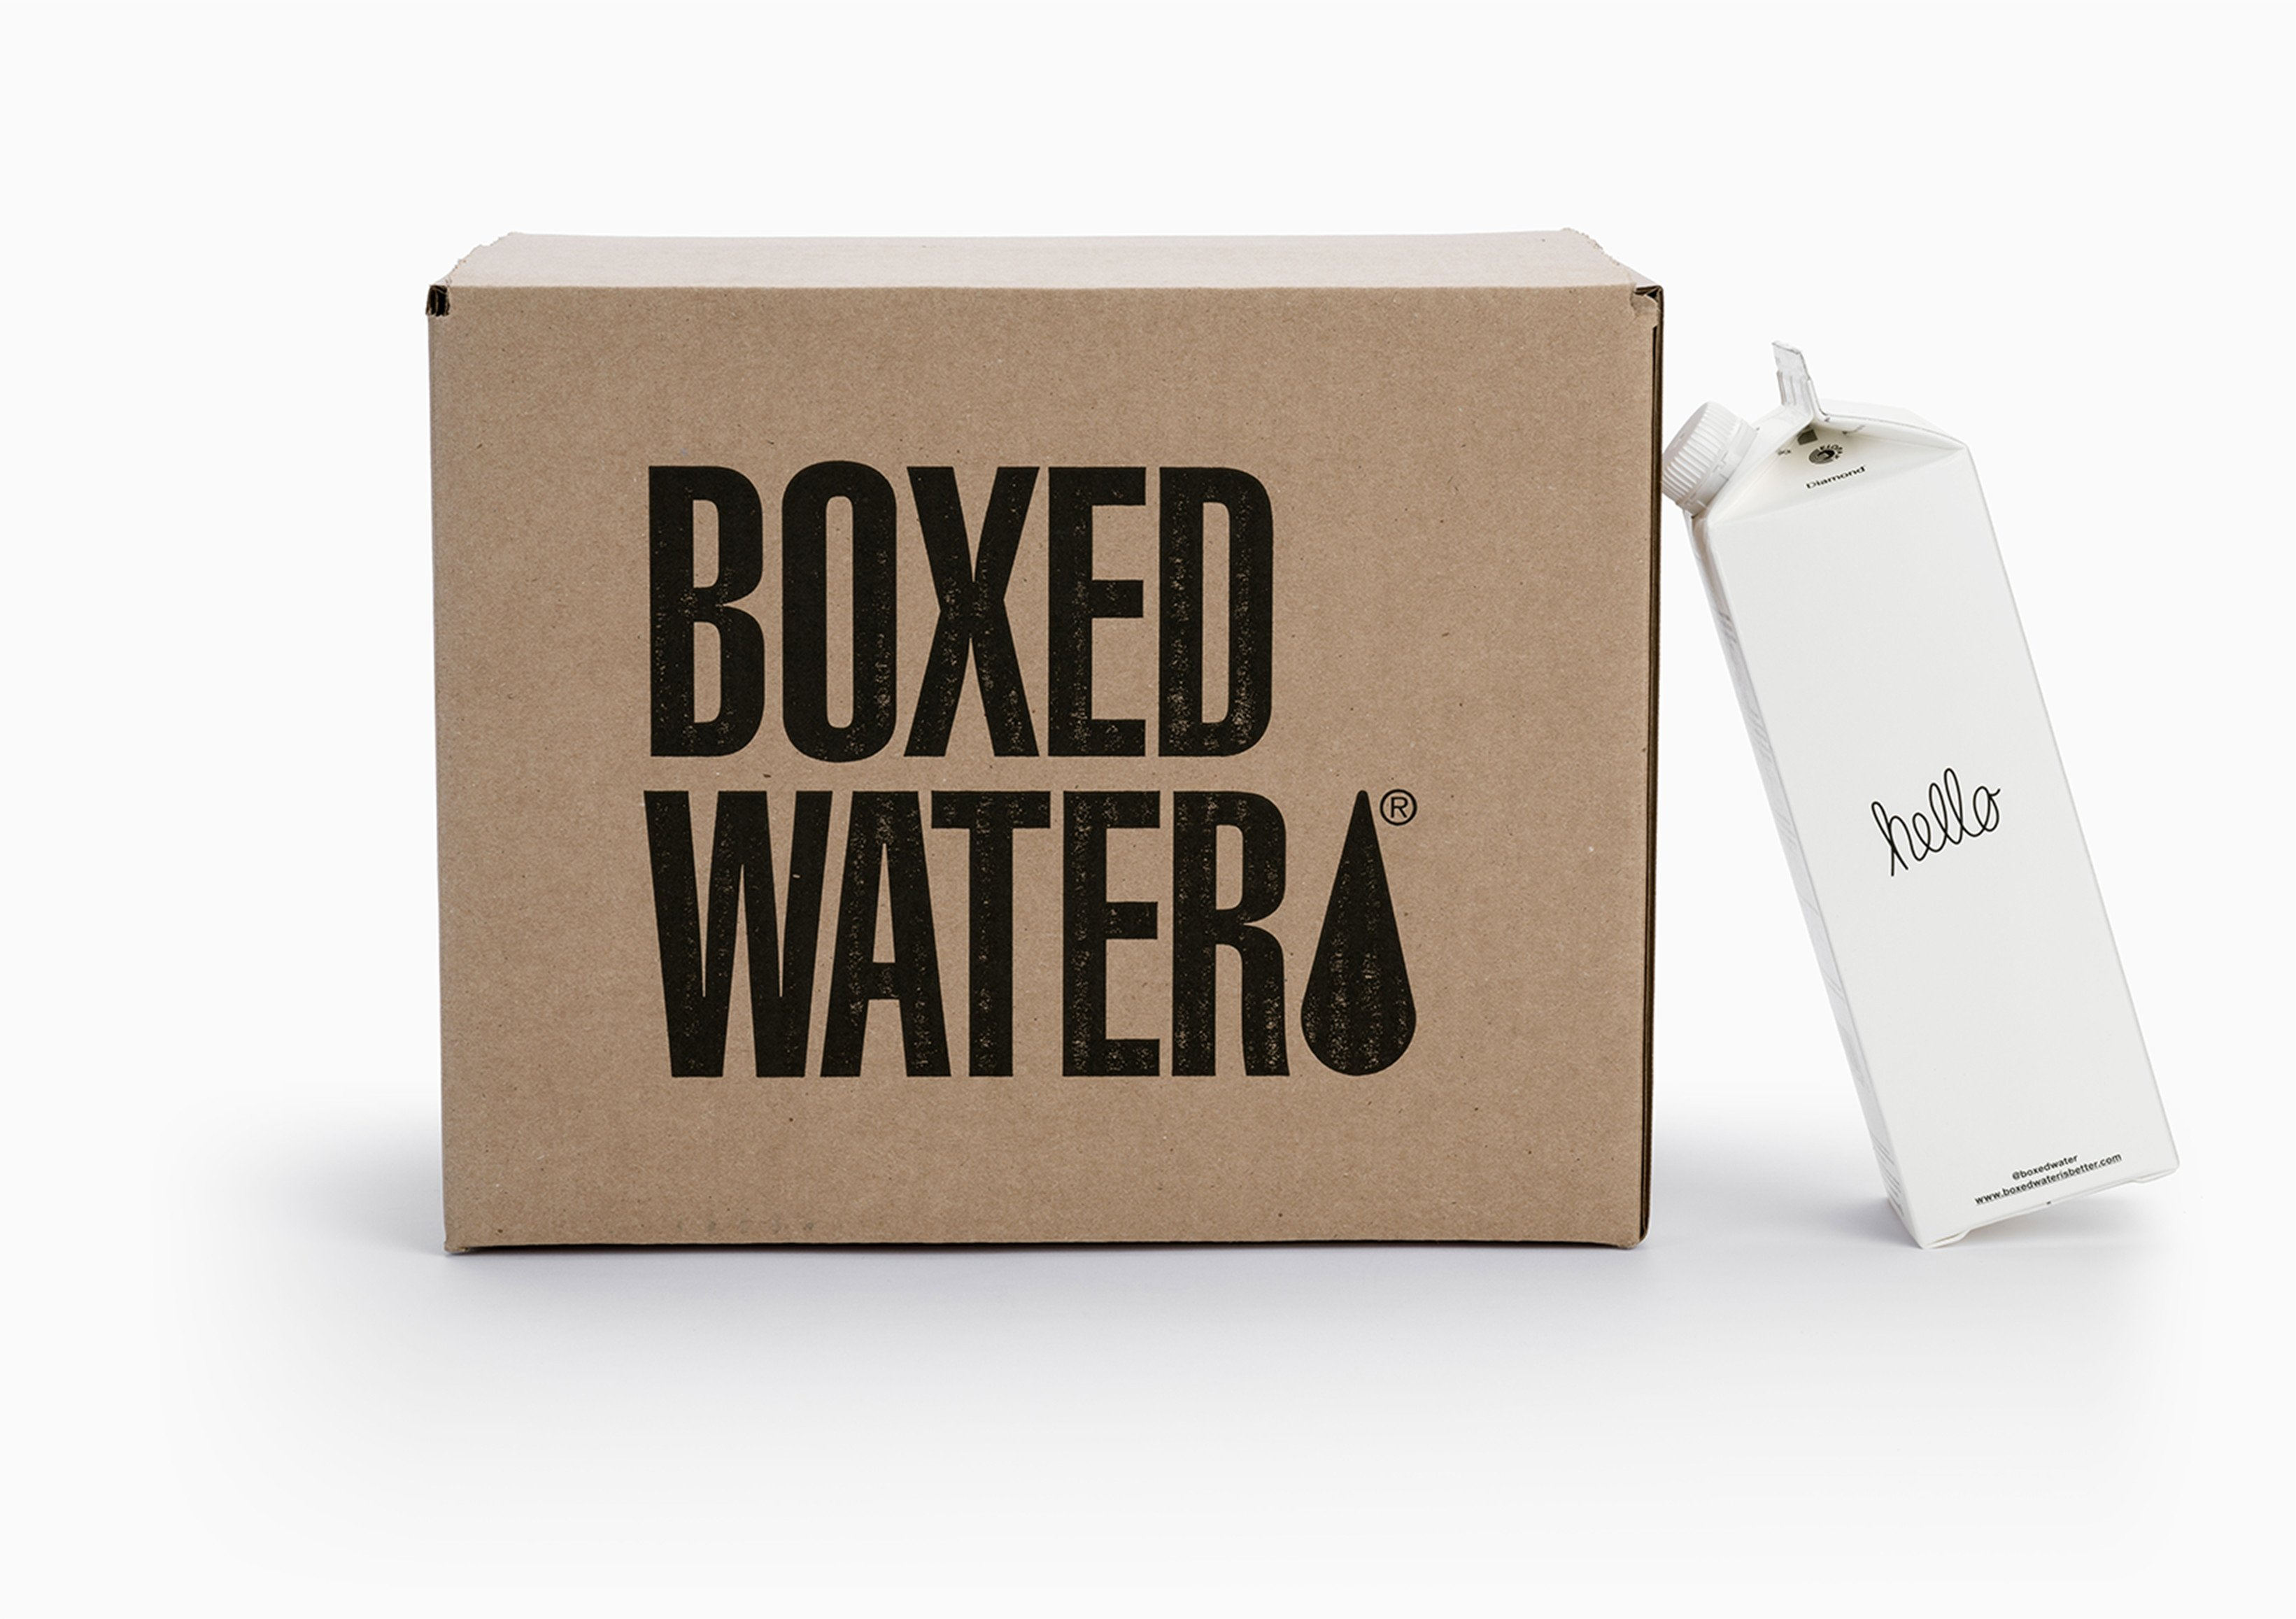 1 Liter Boxed Water  10.00% Off Auto renew